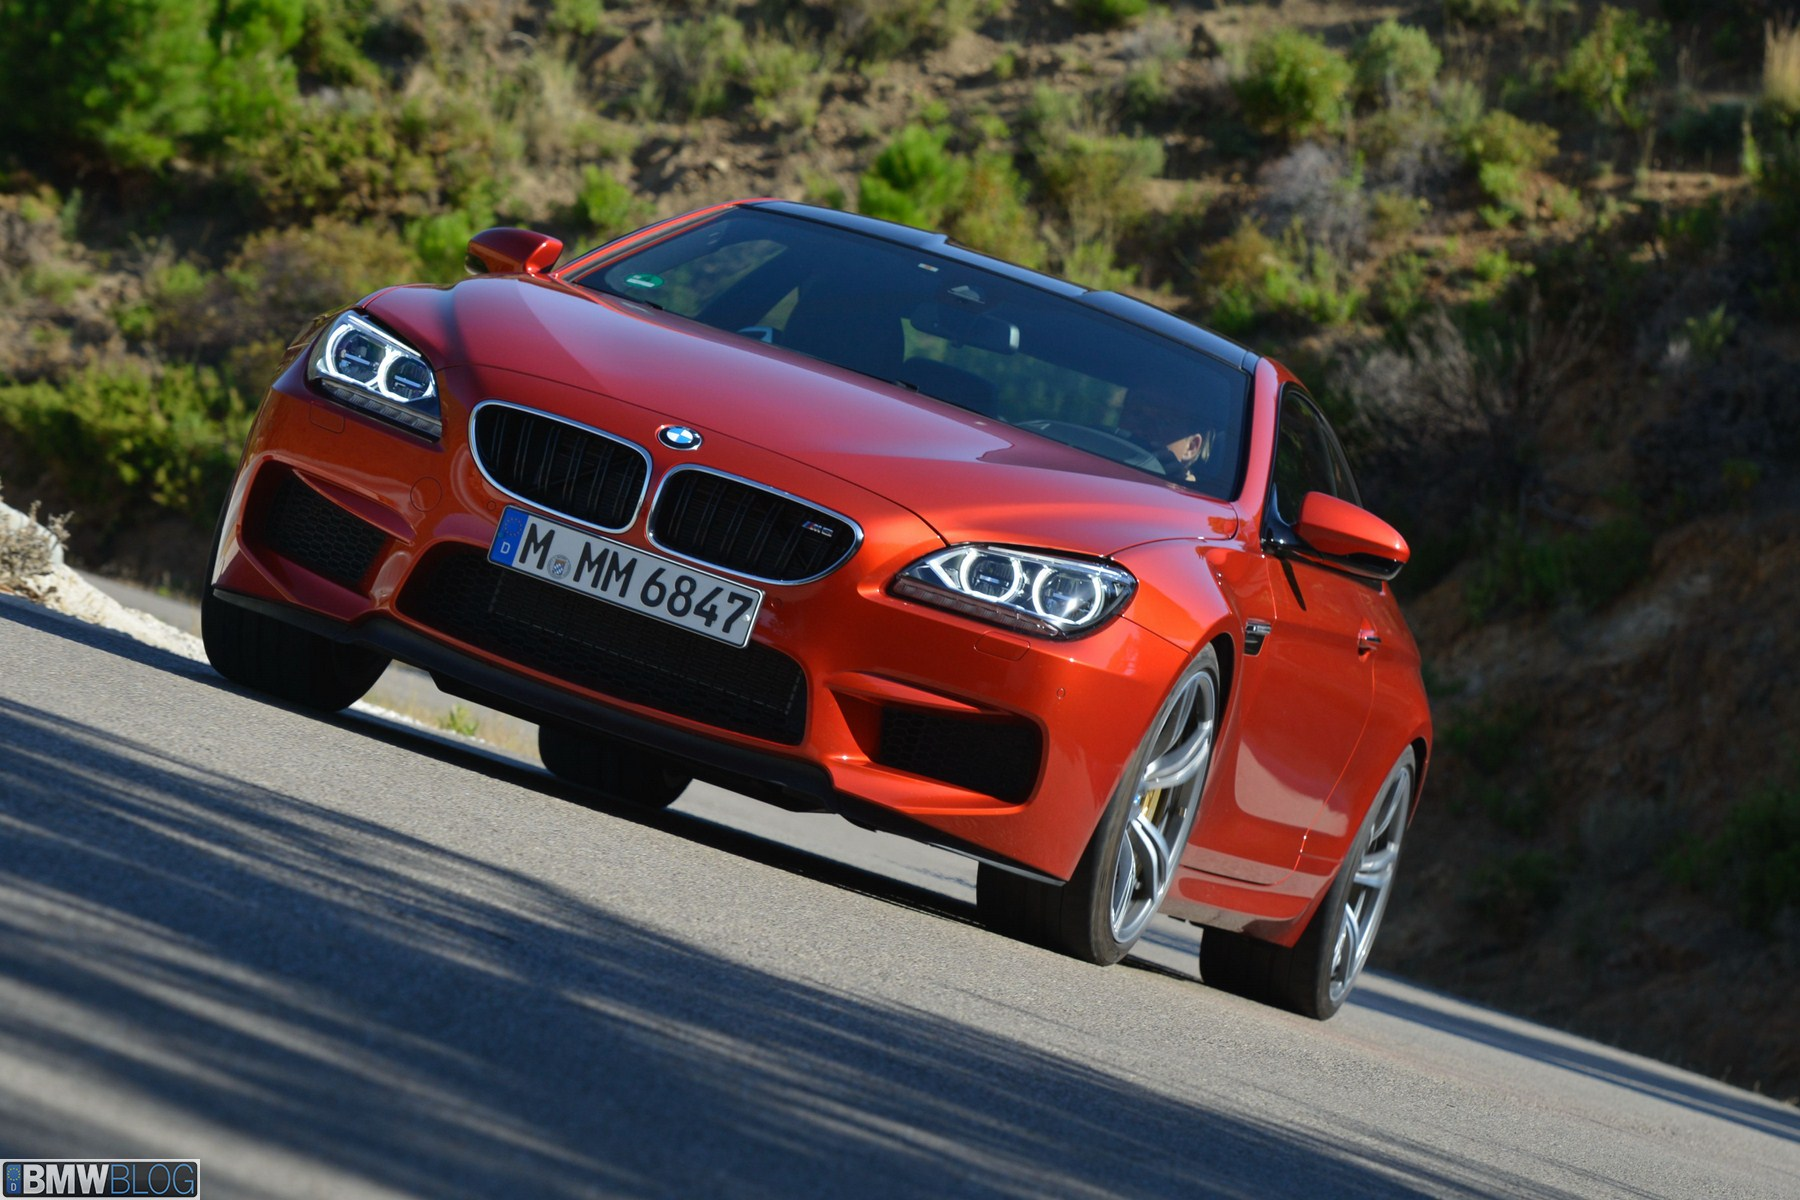 2013 bmw m6 coupe gallery 051